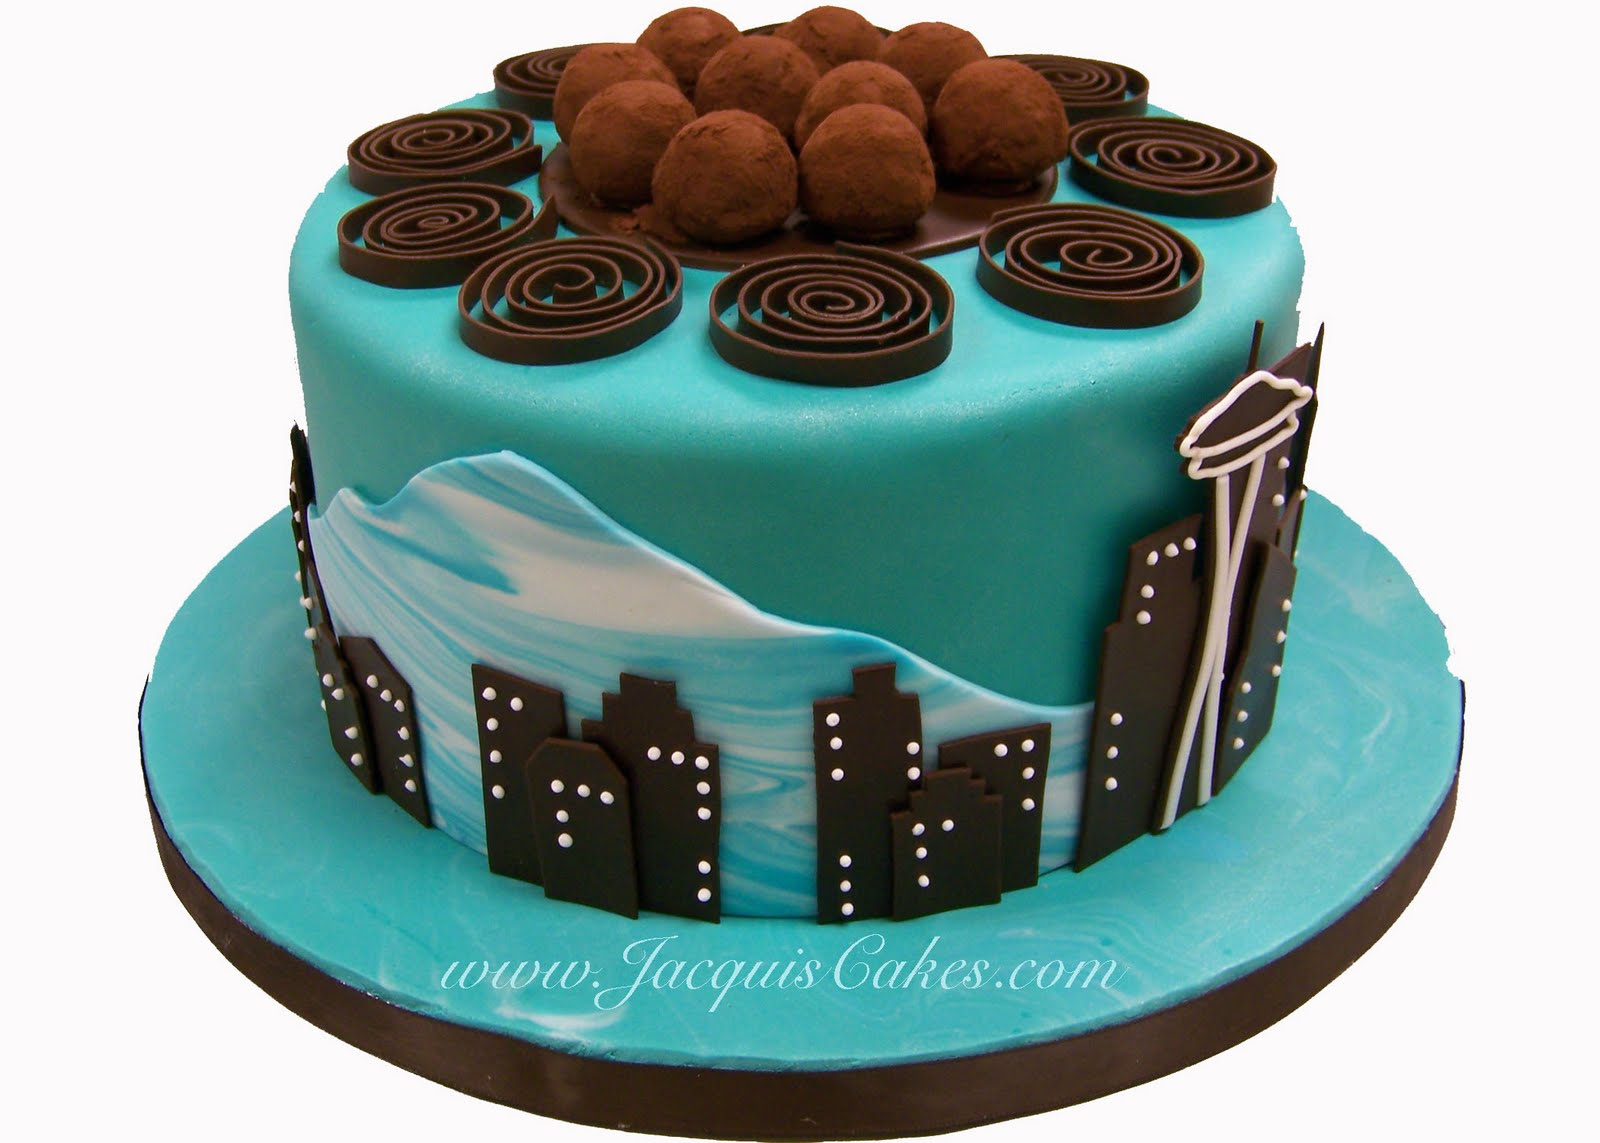 Specialized In Custom Made And Beautifully Designed Mousse Cakes Our Bakery Will Help You Create A Truly Memorable EventBirthday MD VA